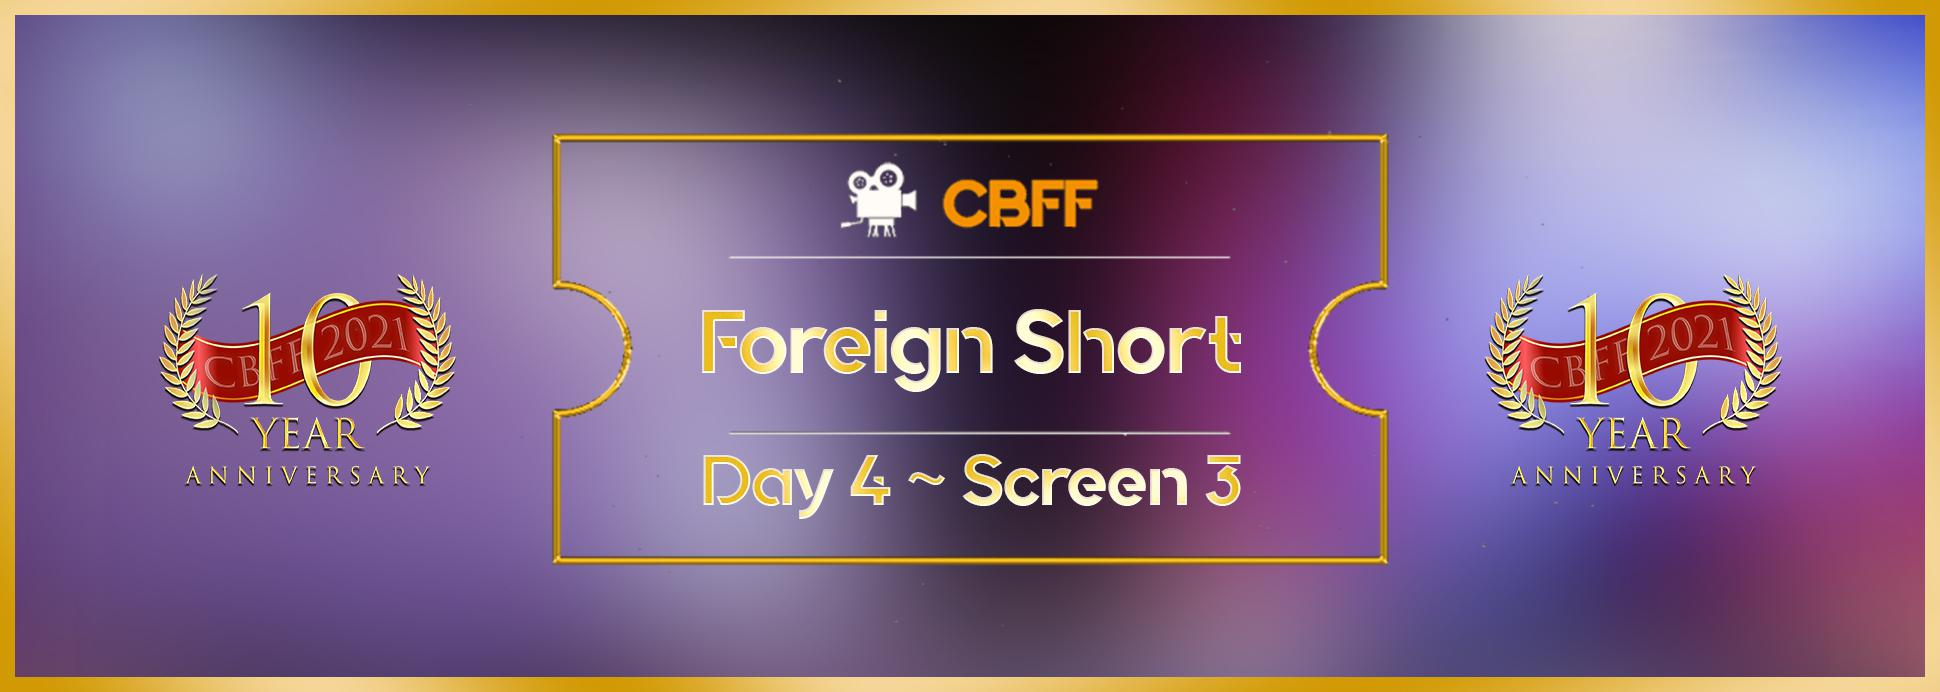 Day 4, Screen 3: Foreign Short 3